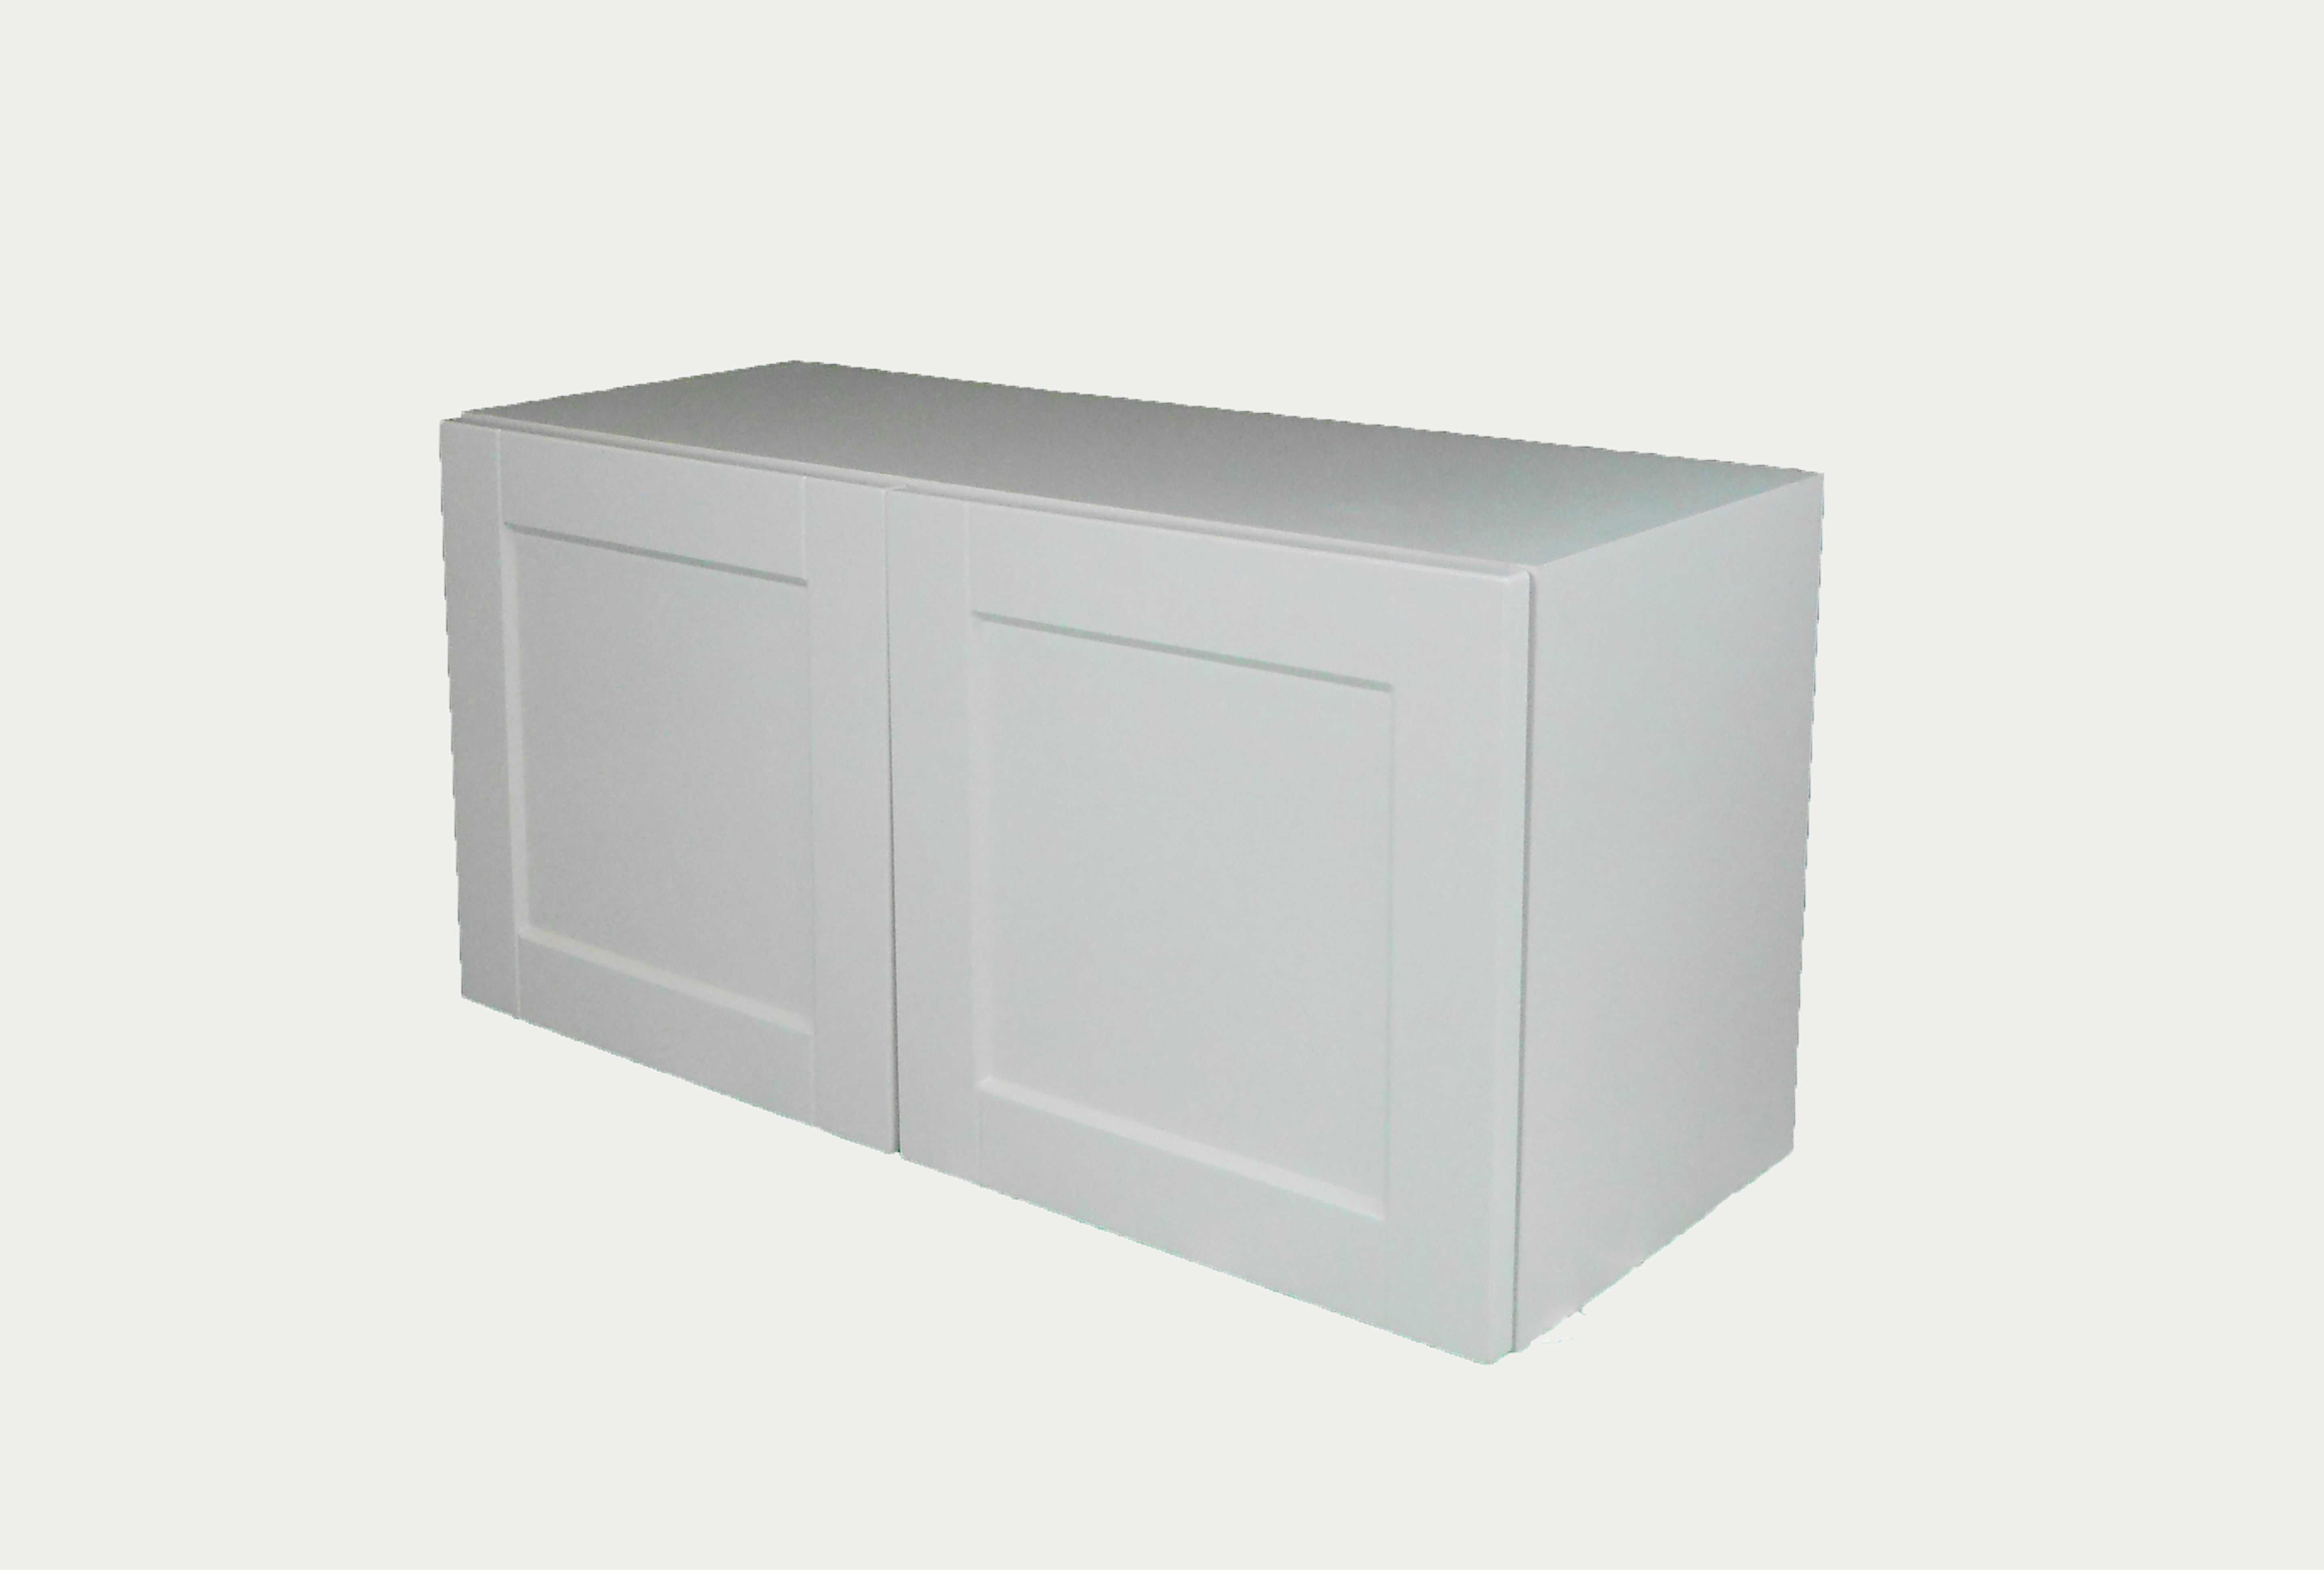 Appliance Wall Cabinet with 2 Doors / Flat Panel White / 24x15 Solaire White 0